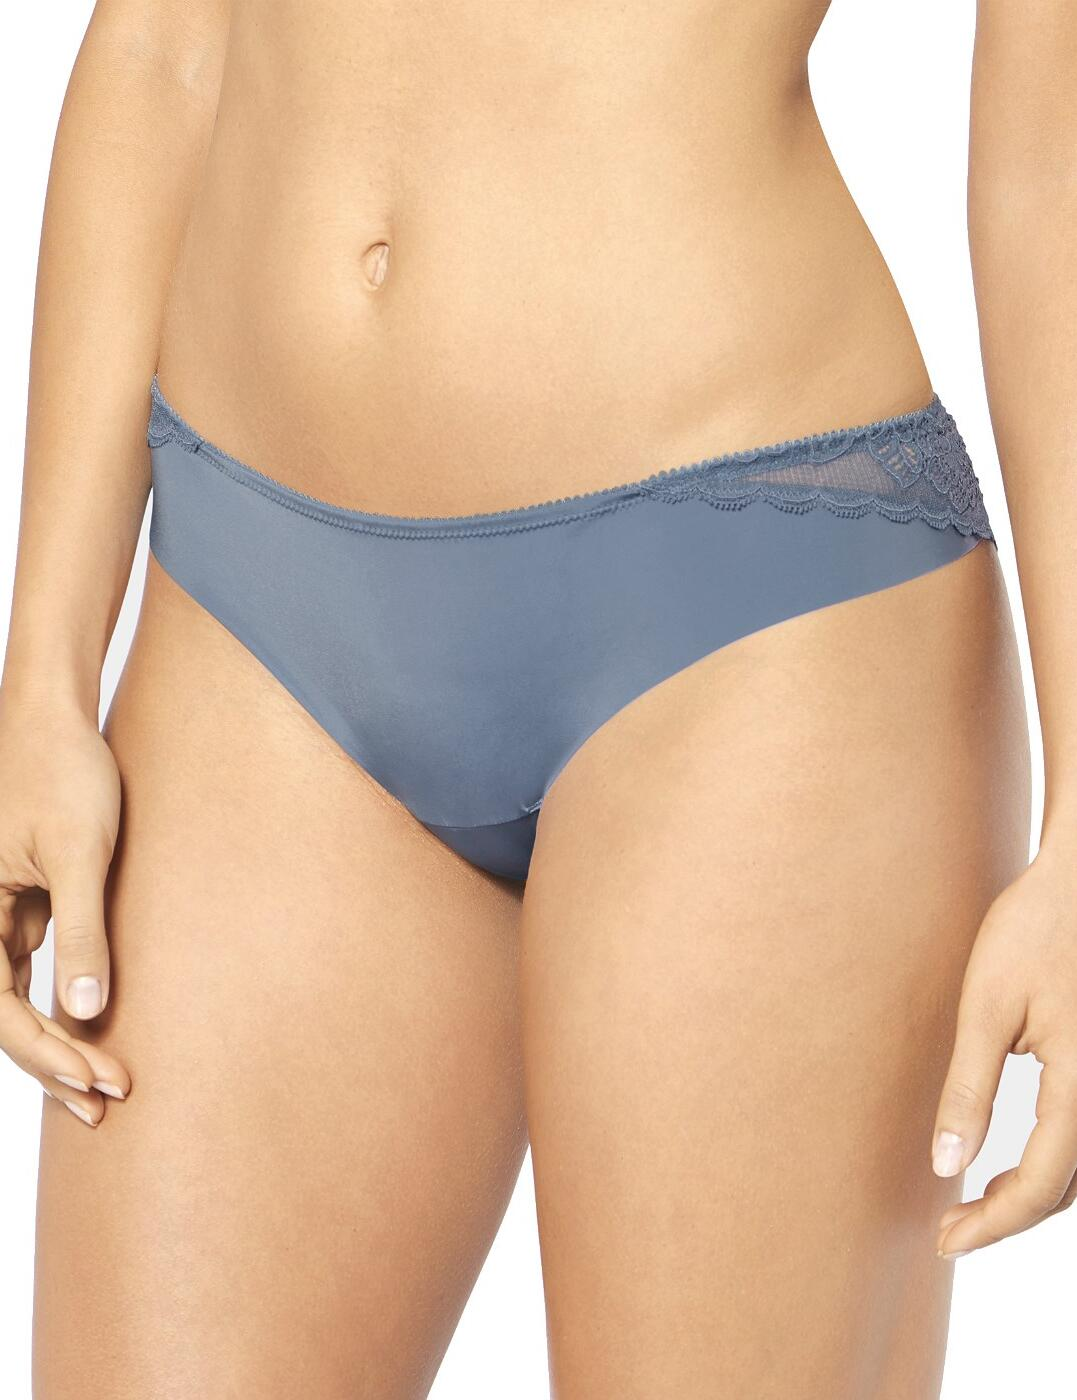 10163558 Triumph Amourette Charm Brazilian Brief - 10163558 Placid Water